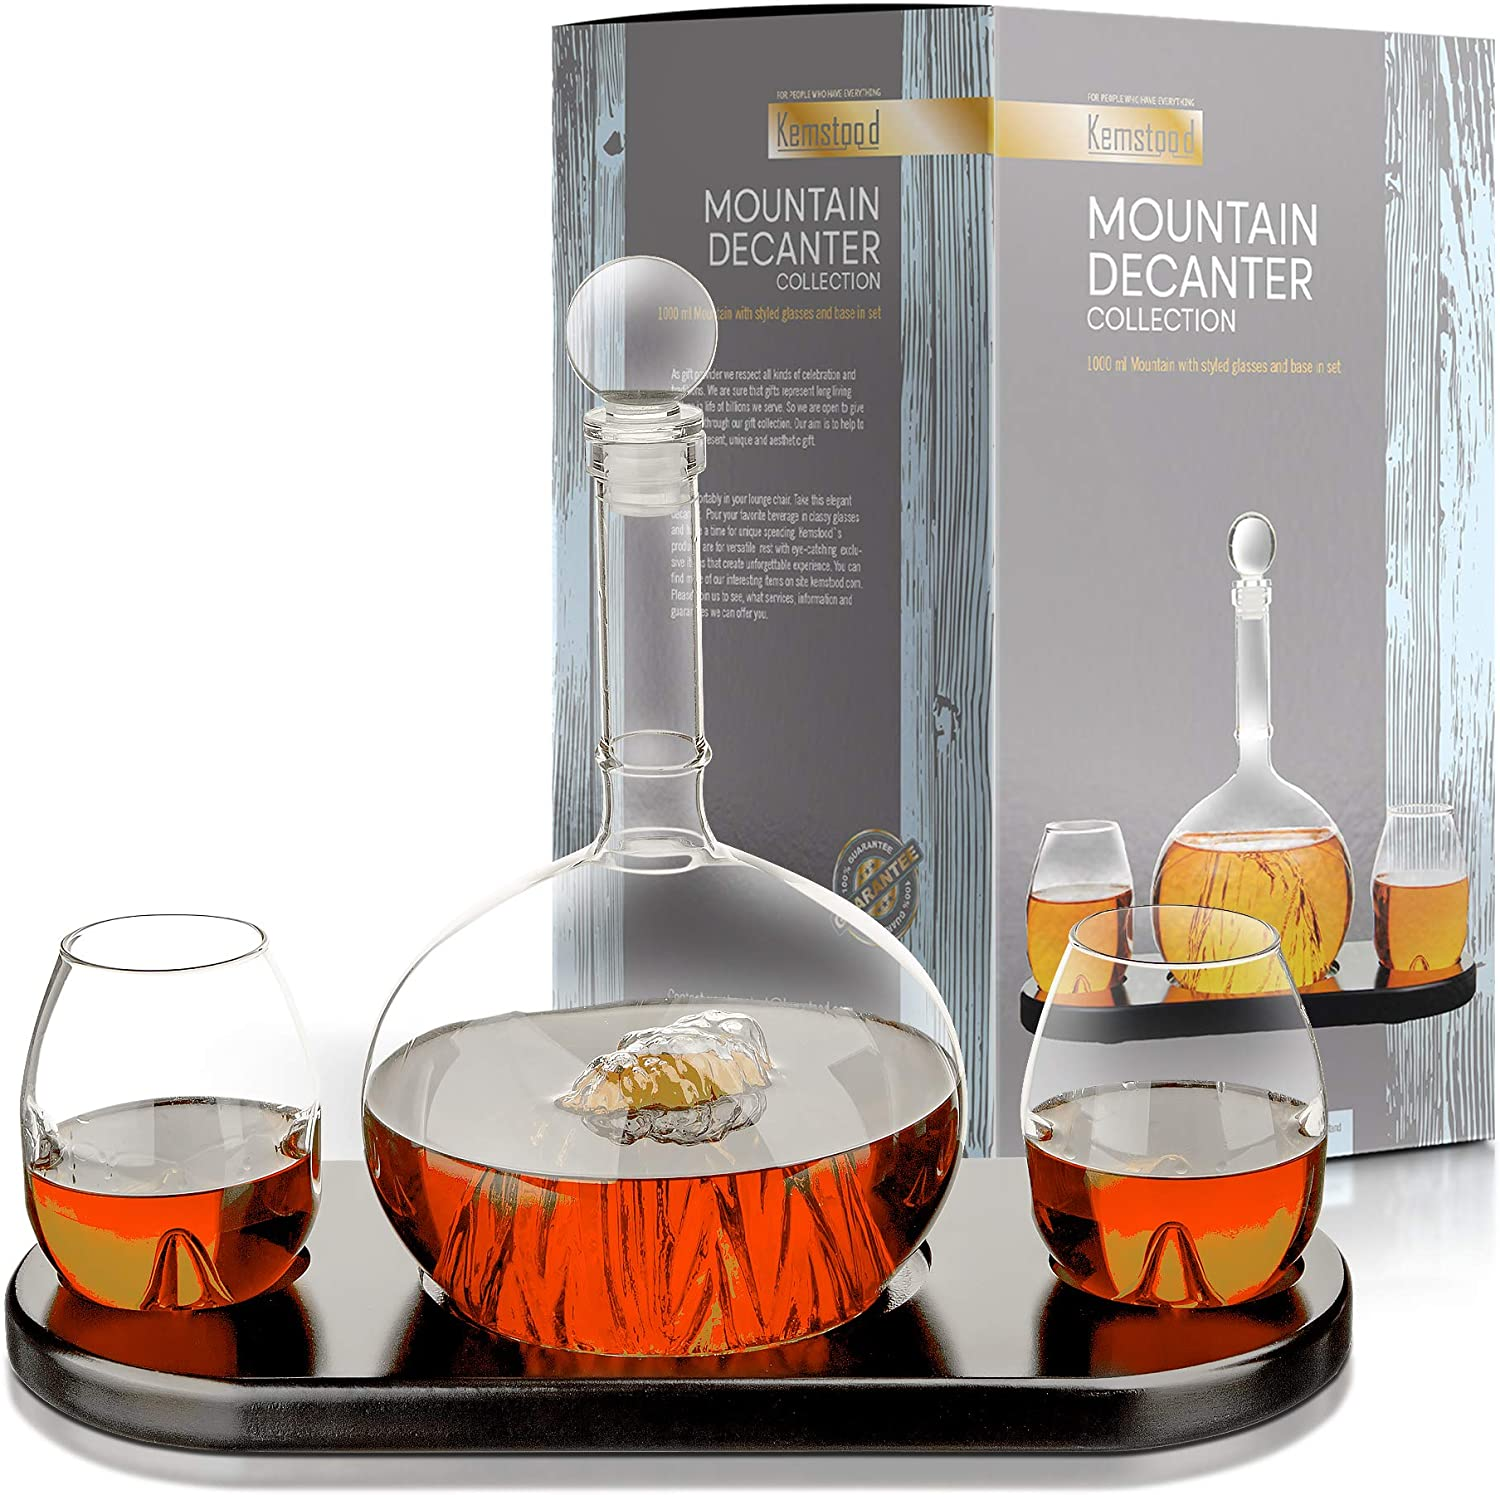 Whiskey Decanter Sets Crystal Glass Decanter for Alcohol – MOUNTAIN Decanter for Men – Personalized GIFT Set with 2 Glasses and Wood Base for Liquor, Scotch, Bourbon, Brandy, Vodka